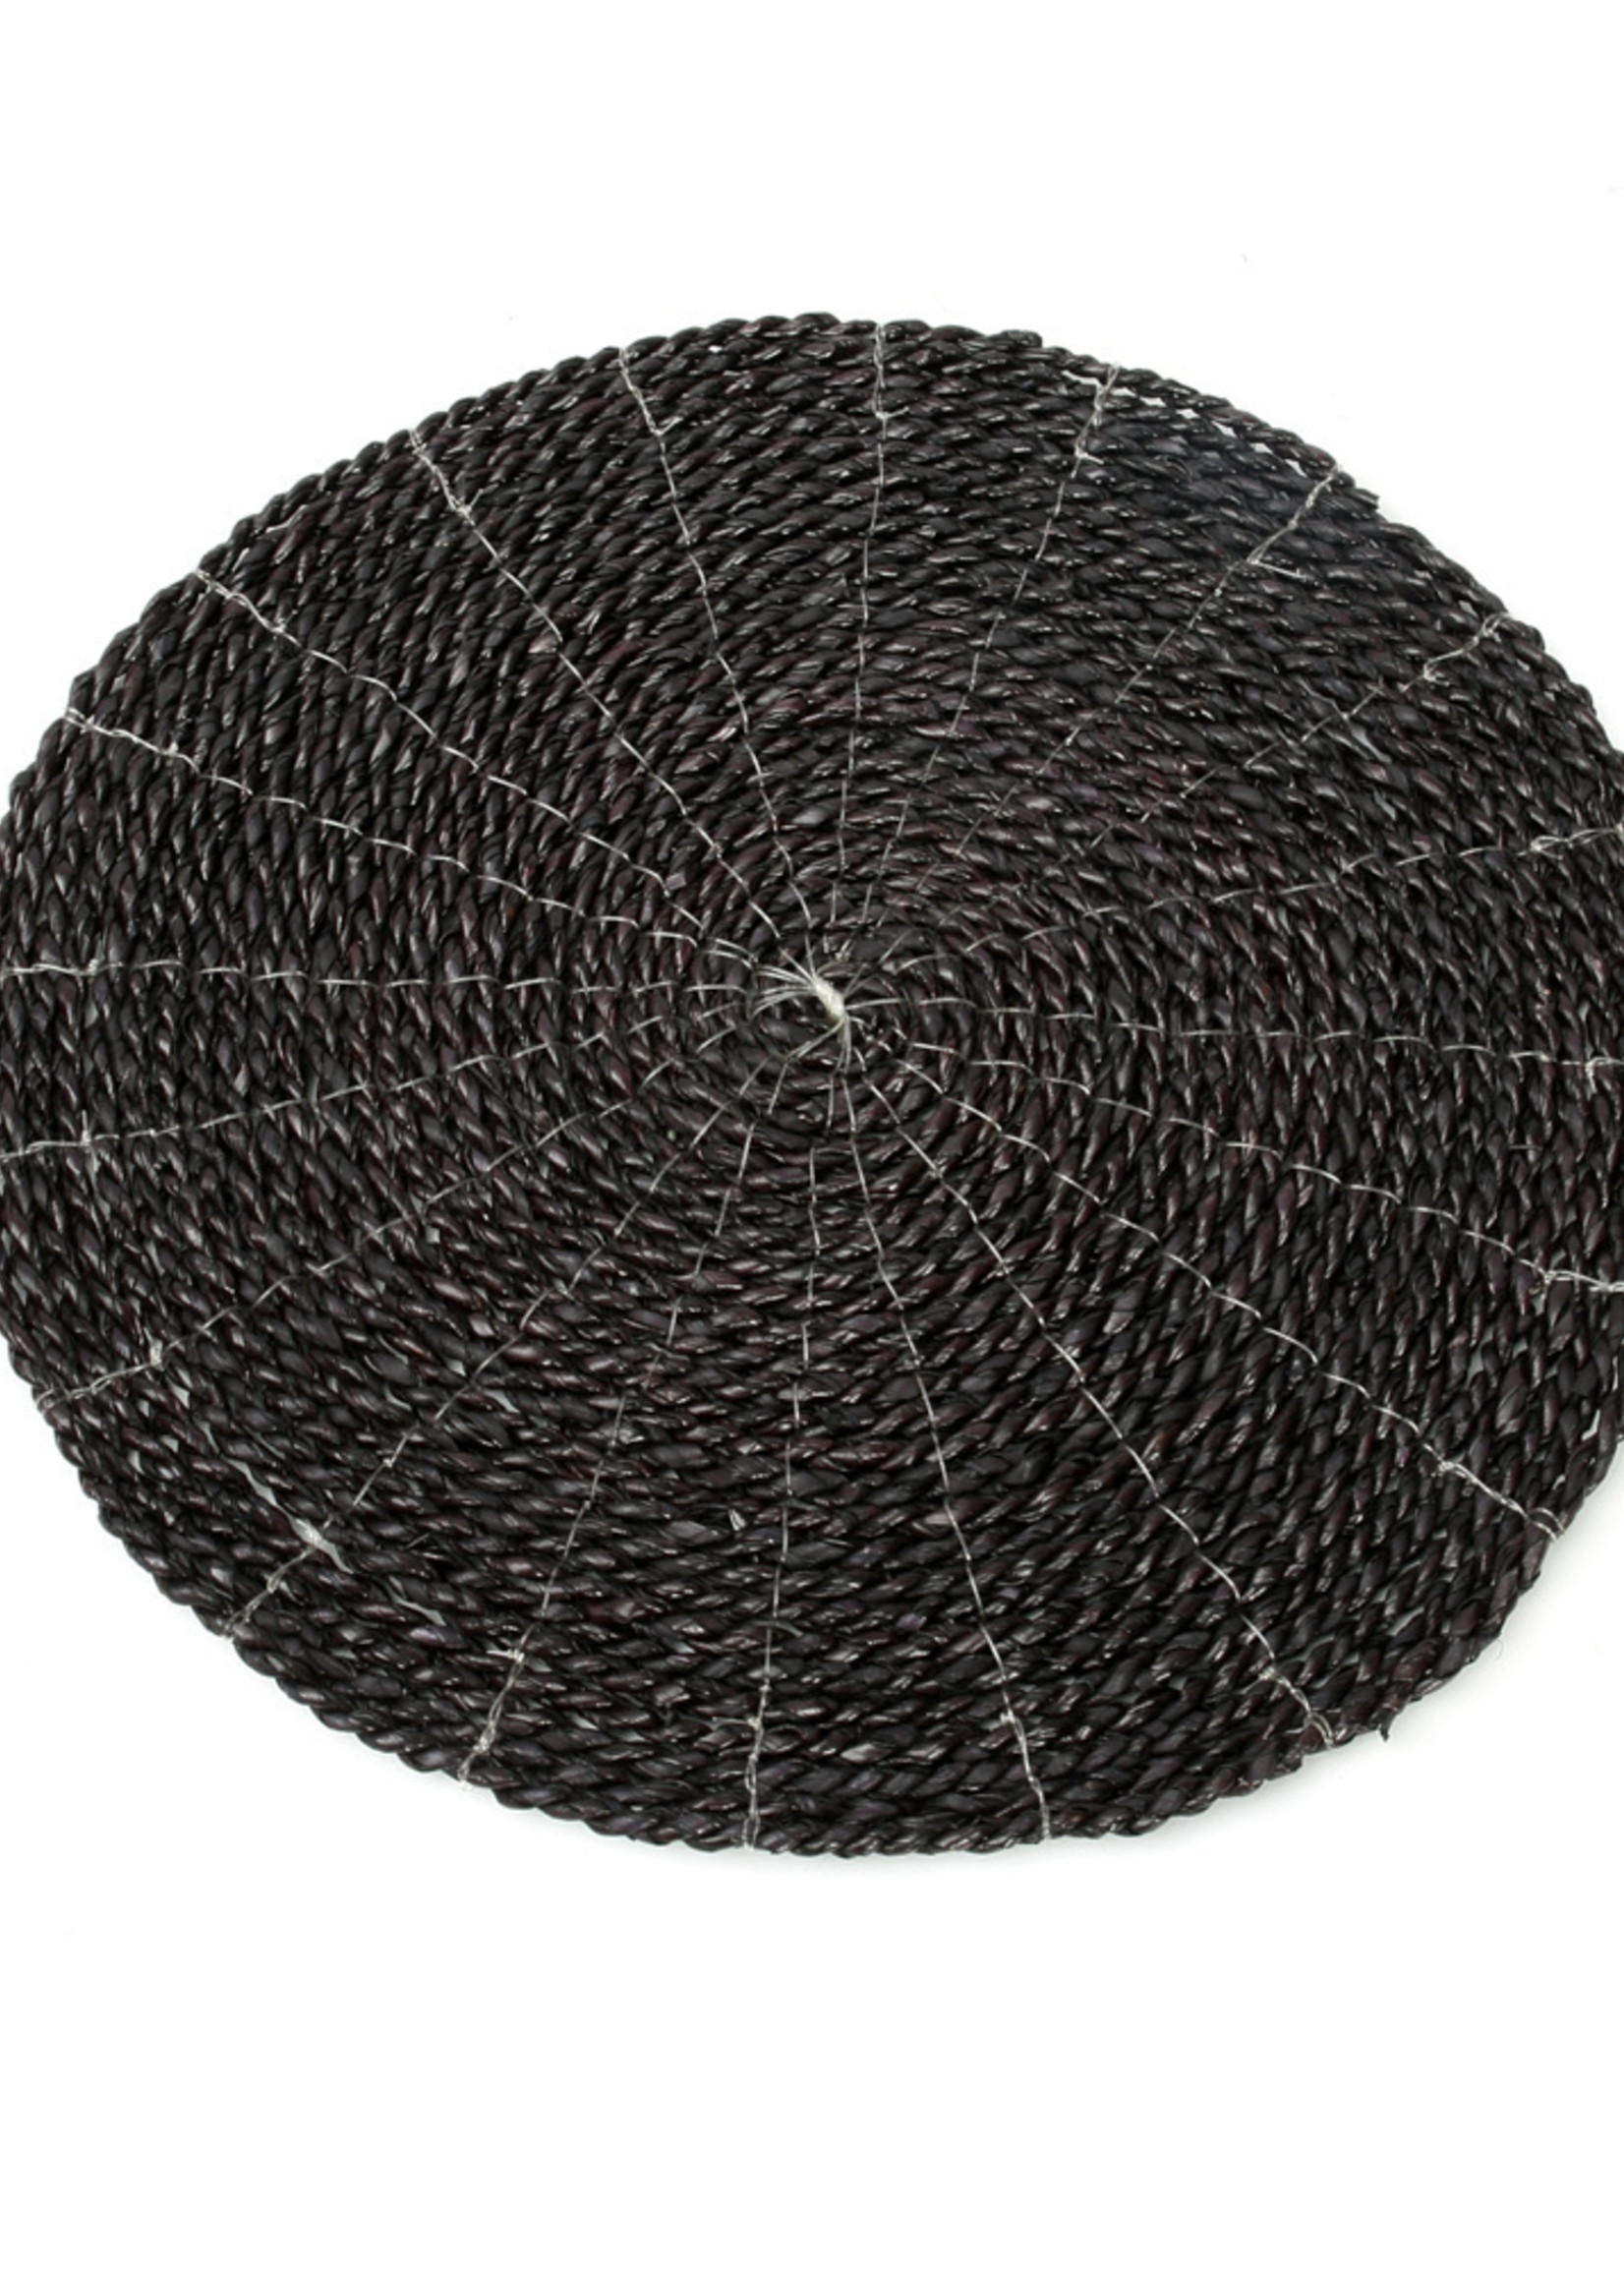 The Seagrass Placemat - Black